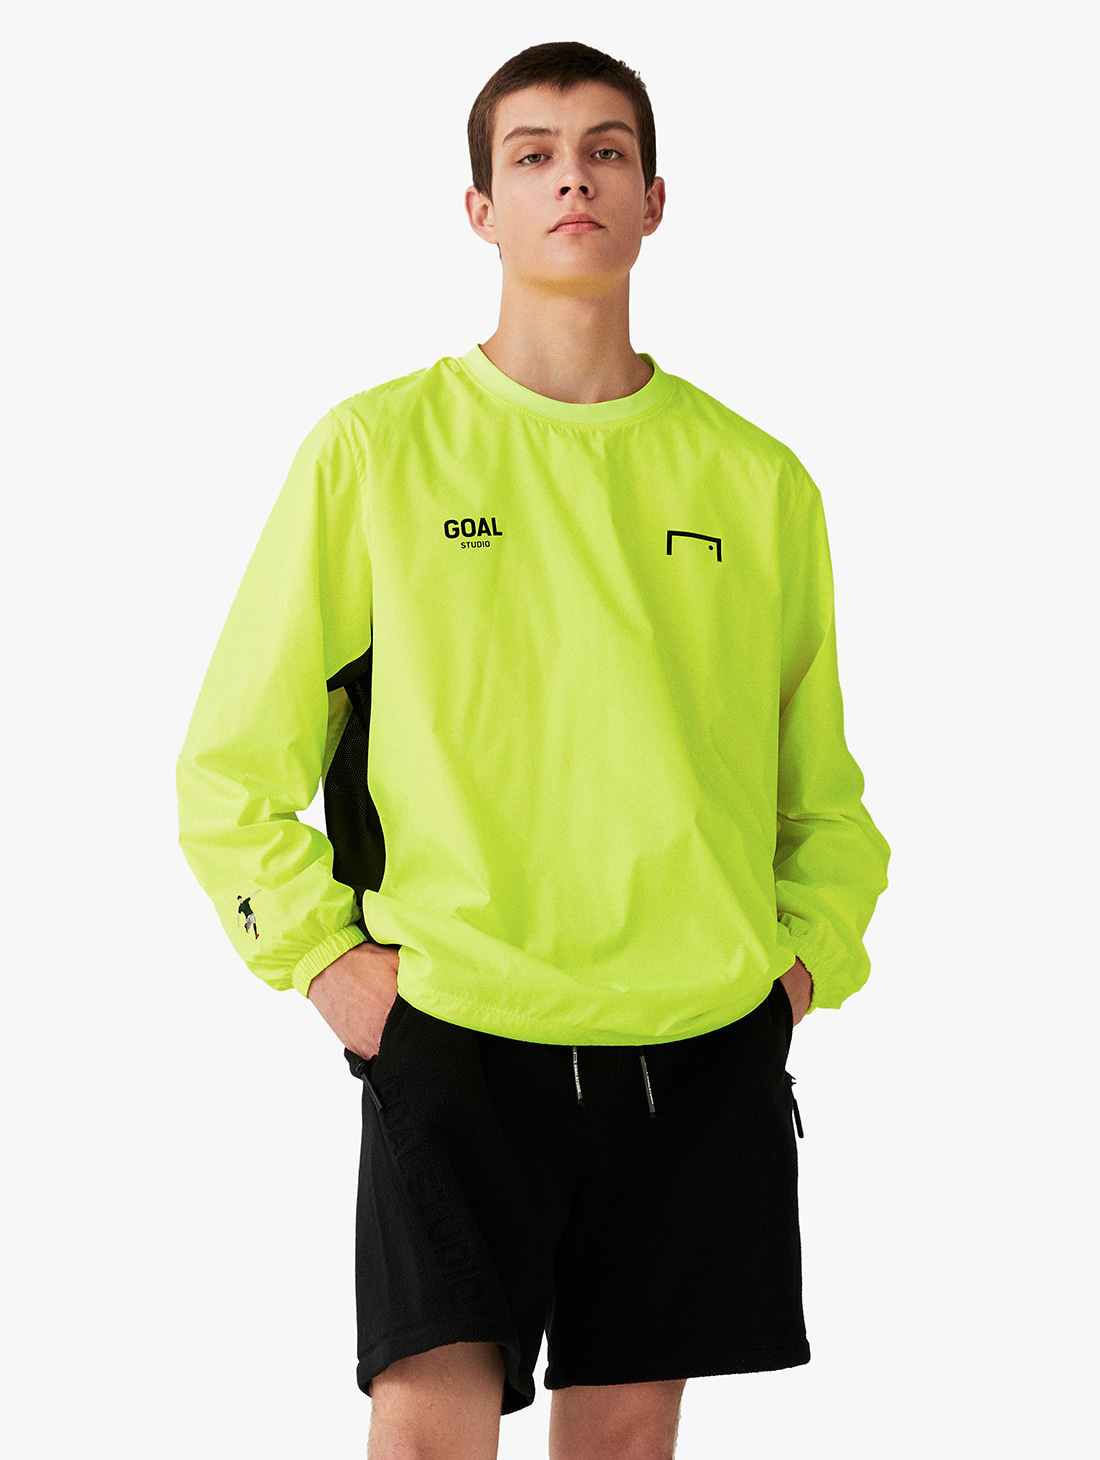 GOALSTUDIO SIGNATURE LOGO WINDPULLOVER (3 Colors)